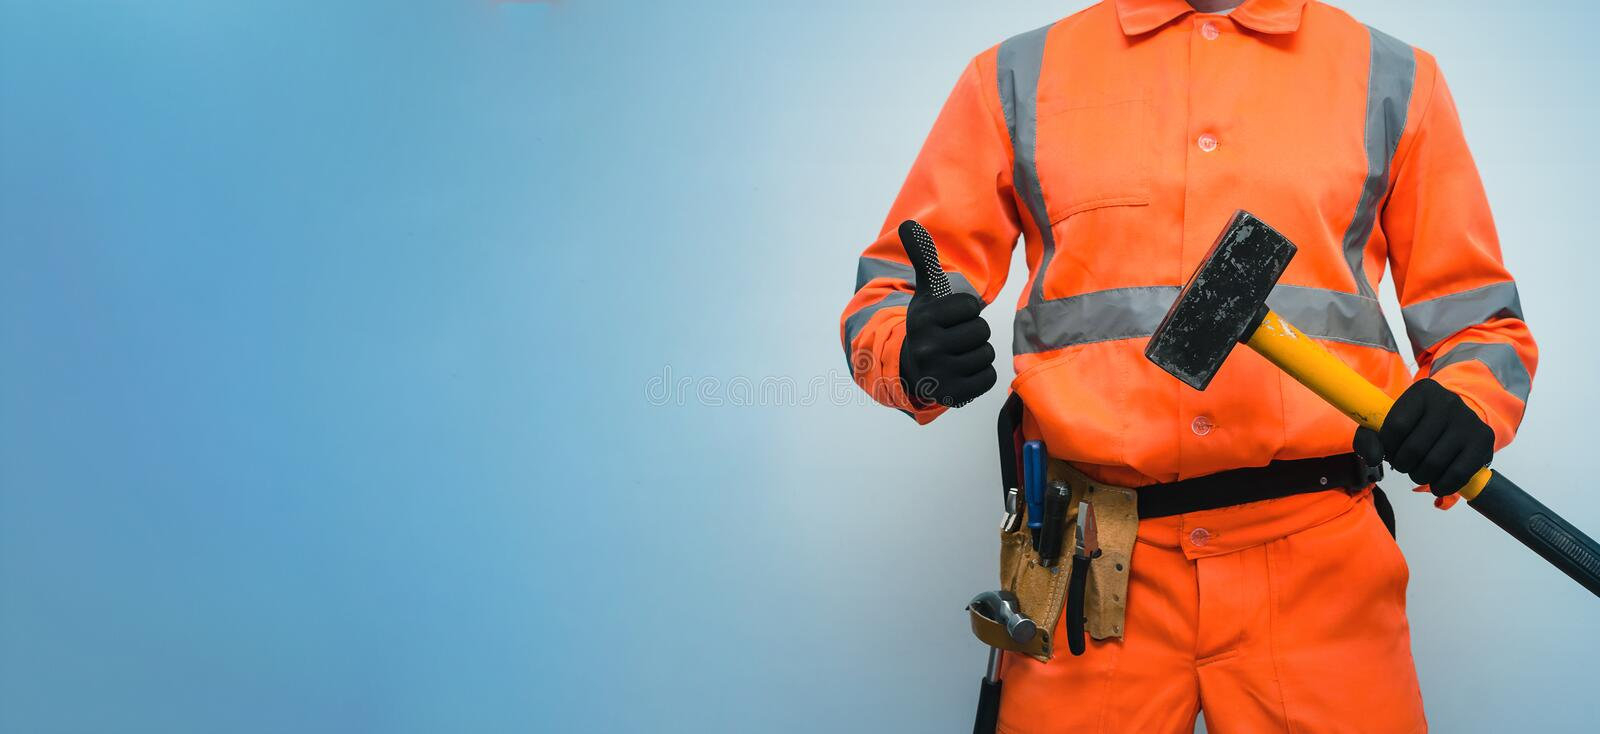 Builder worker. royalty free stock images